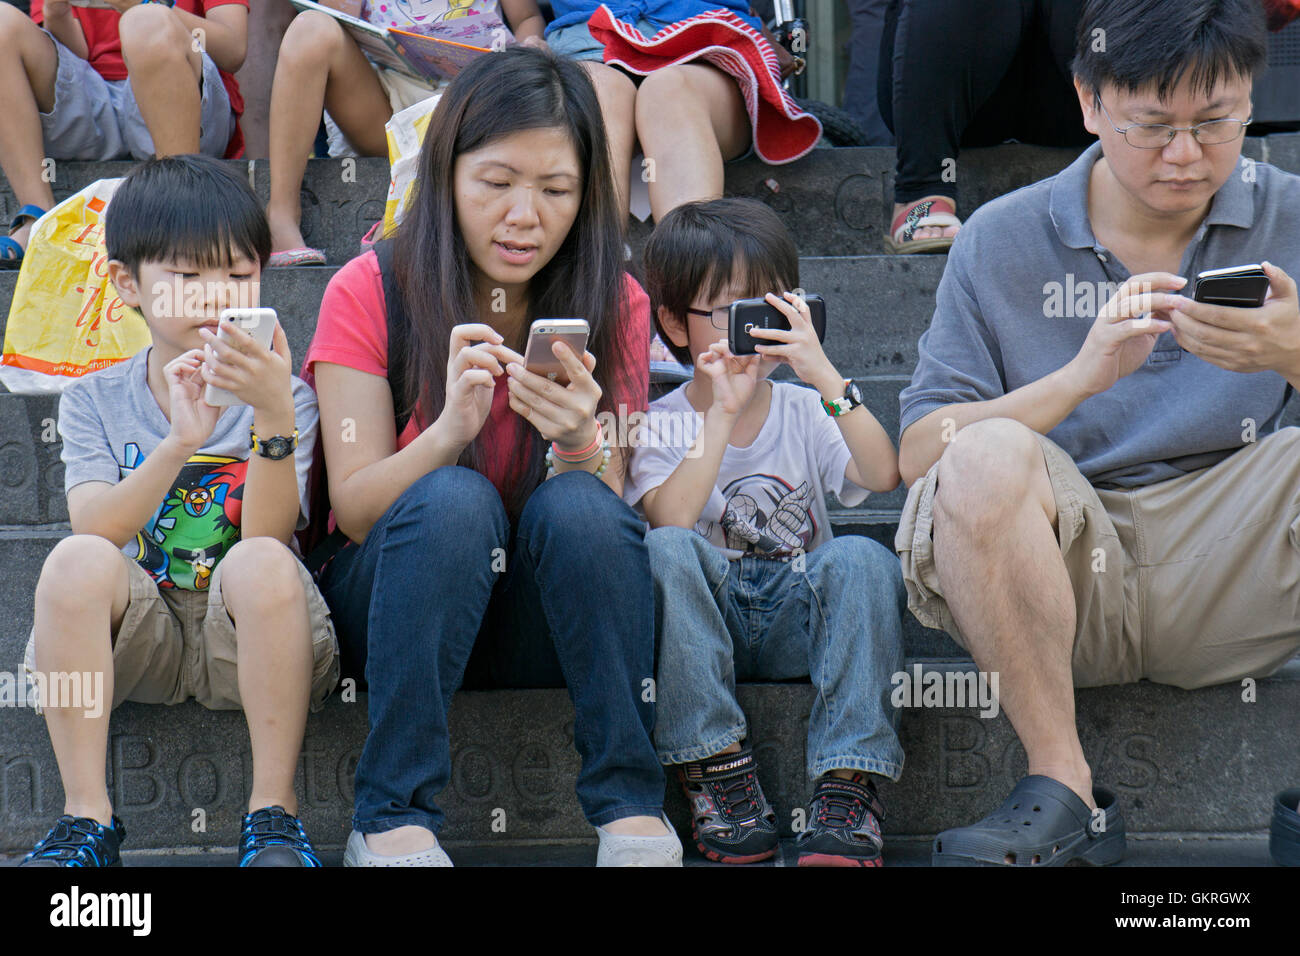 An Asian family sitting on the steps at the public library in Downtown Flushing, Queens, NYC, all using their cell - Stock Image